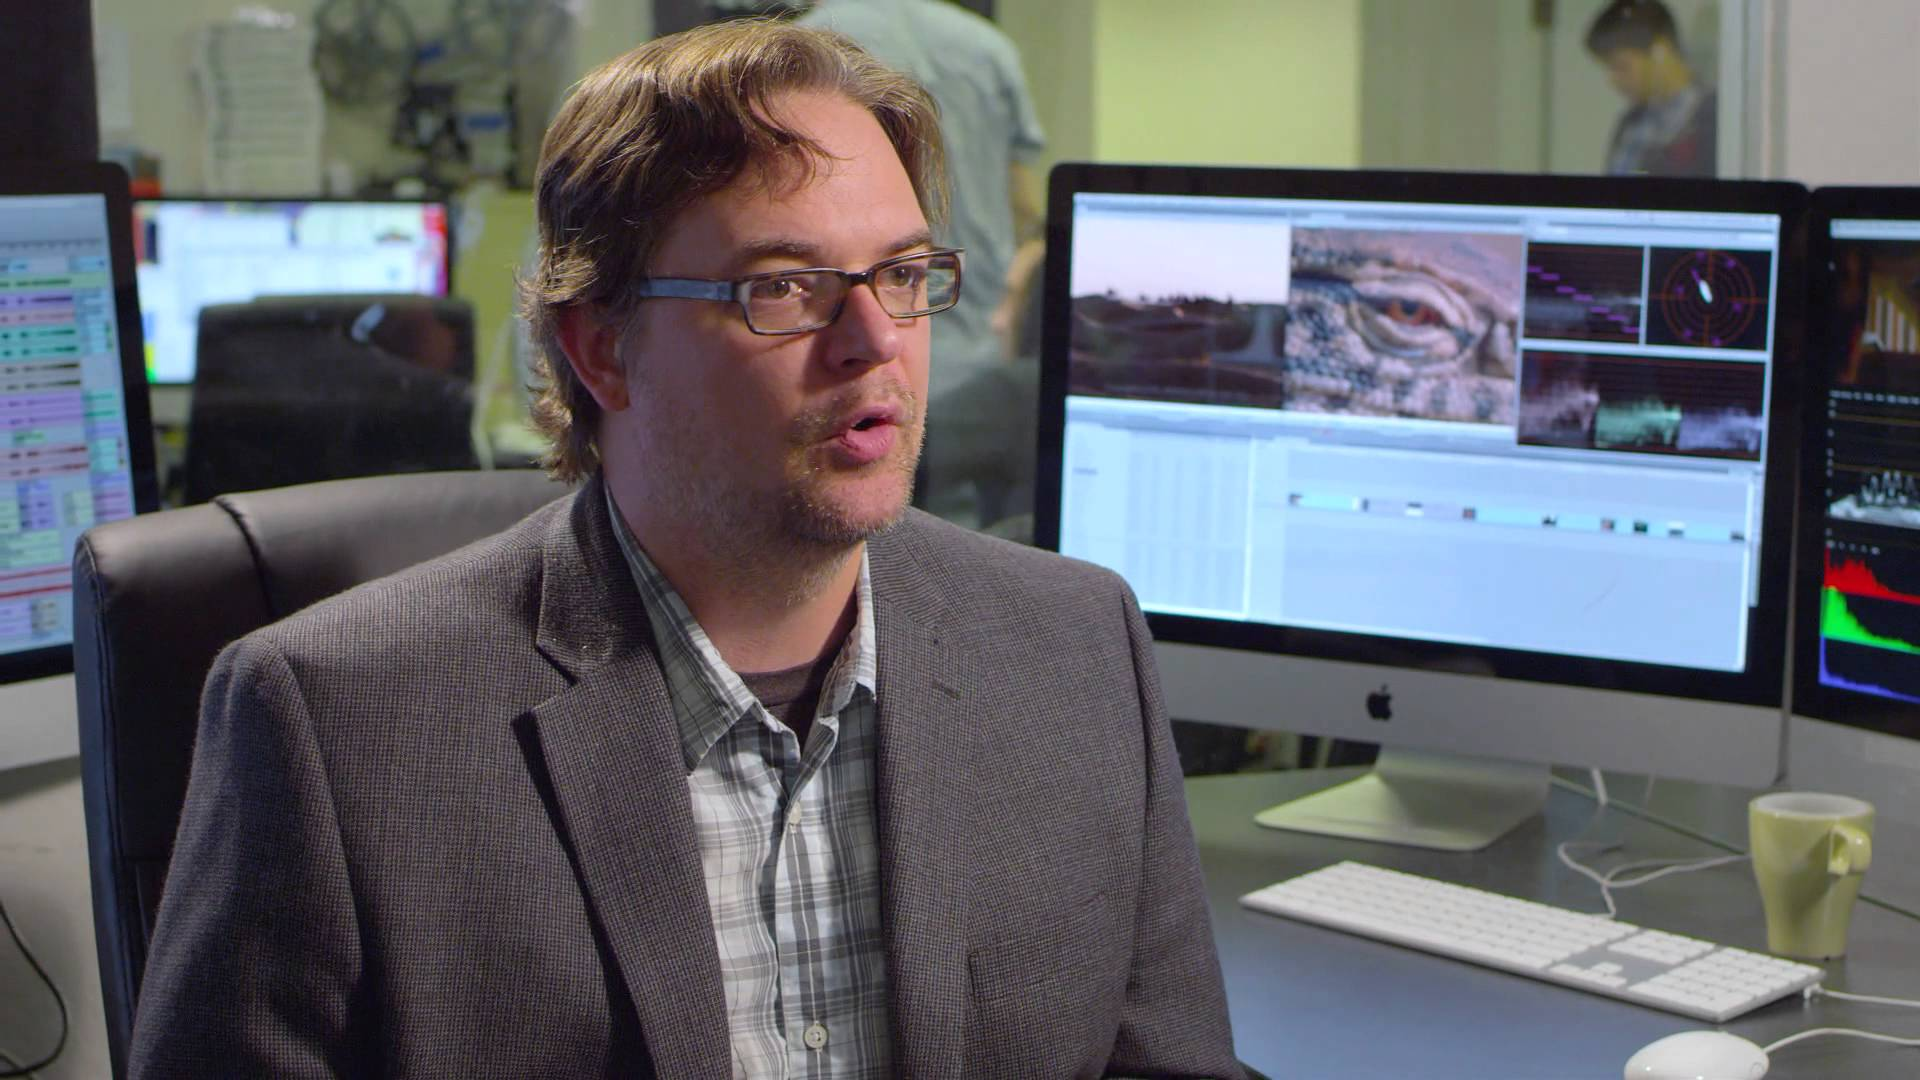 Instructor Igor Torgeson Reviews New York Film Academy's Digital Editing School